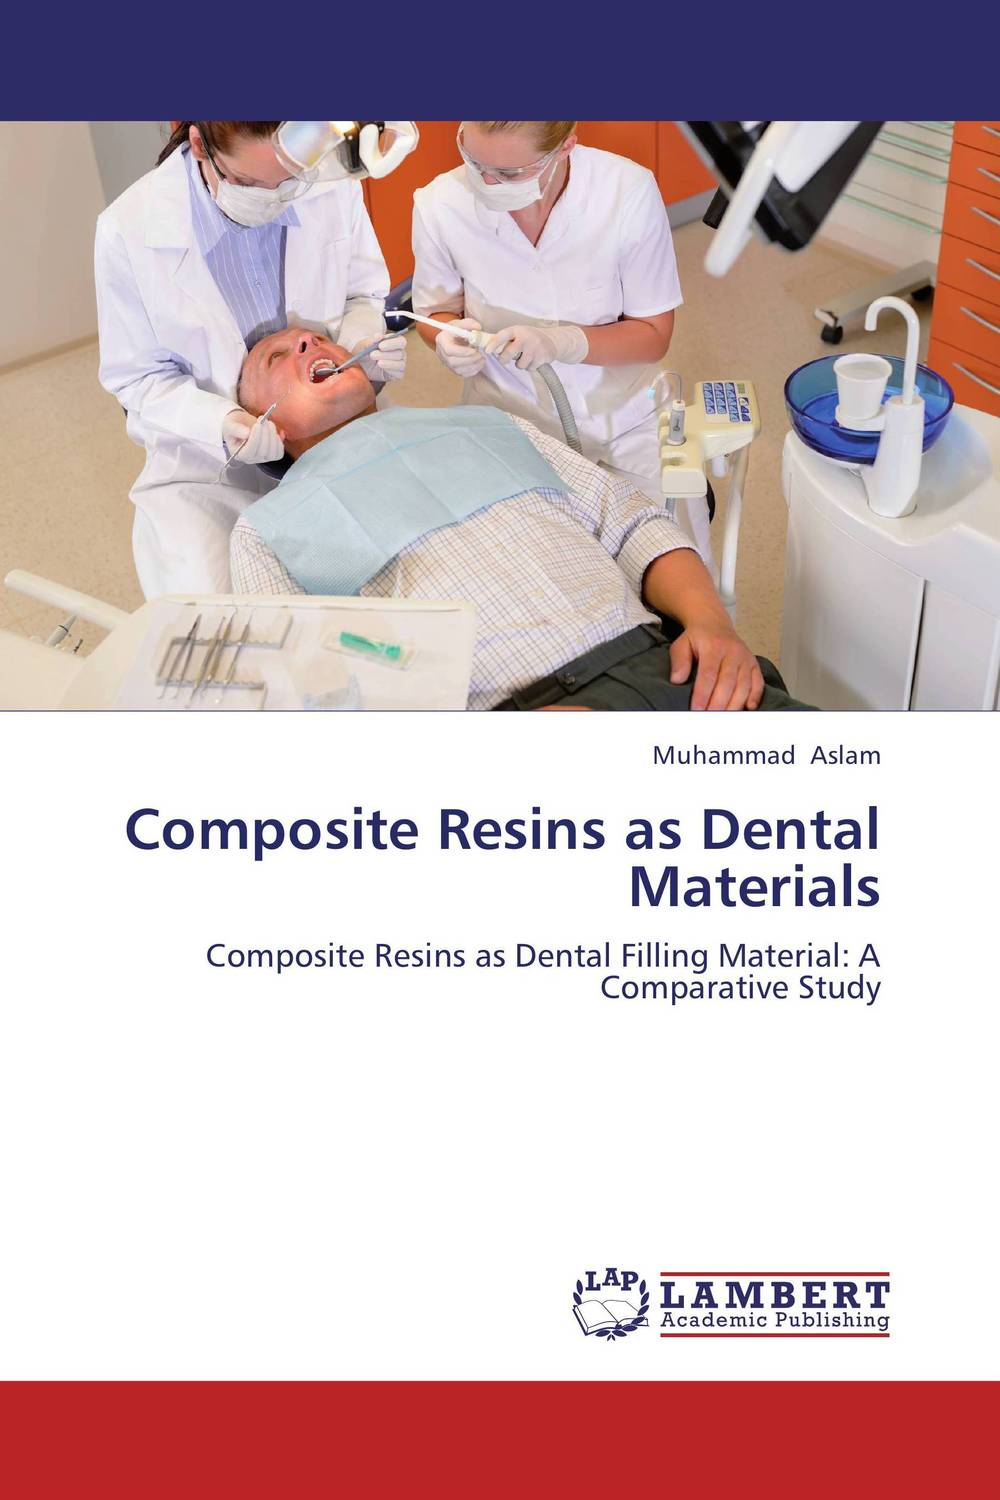 Composite Resins as Dental Materials